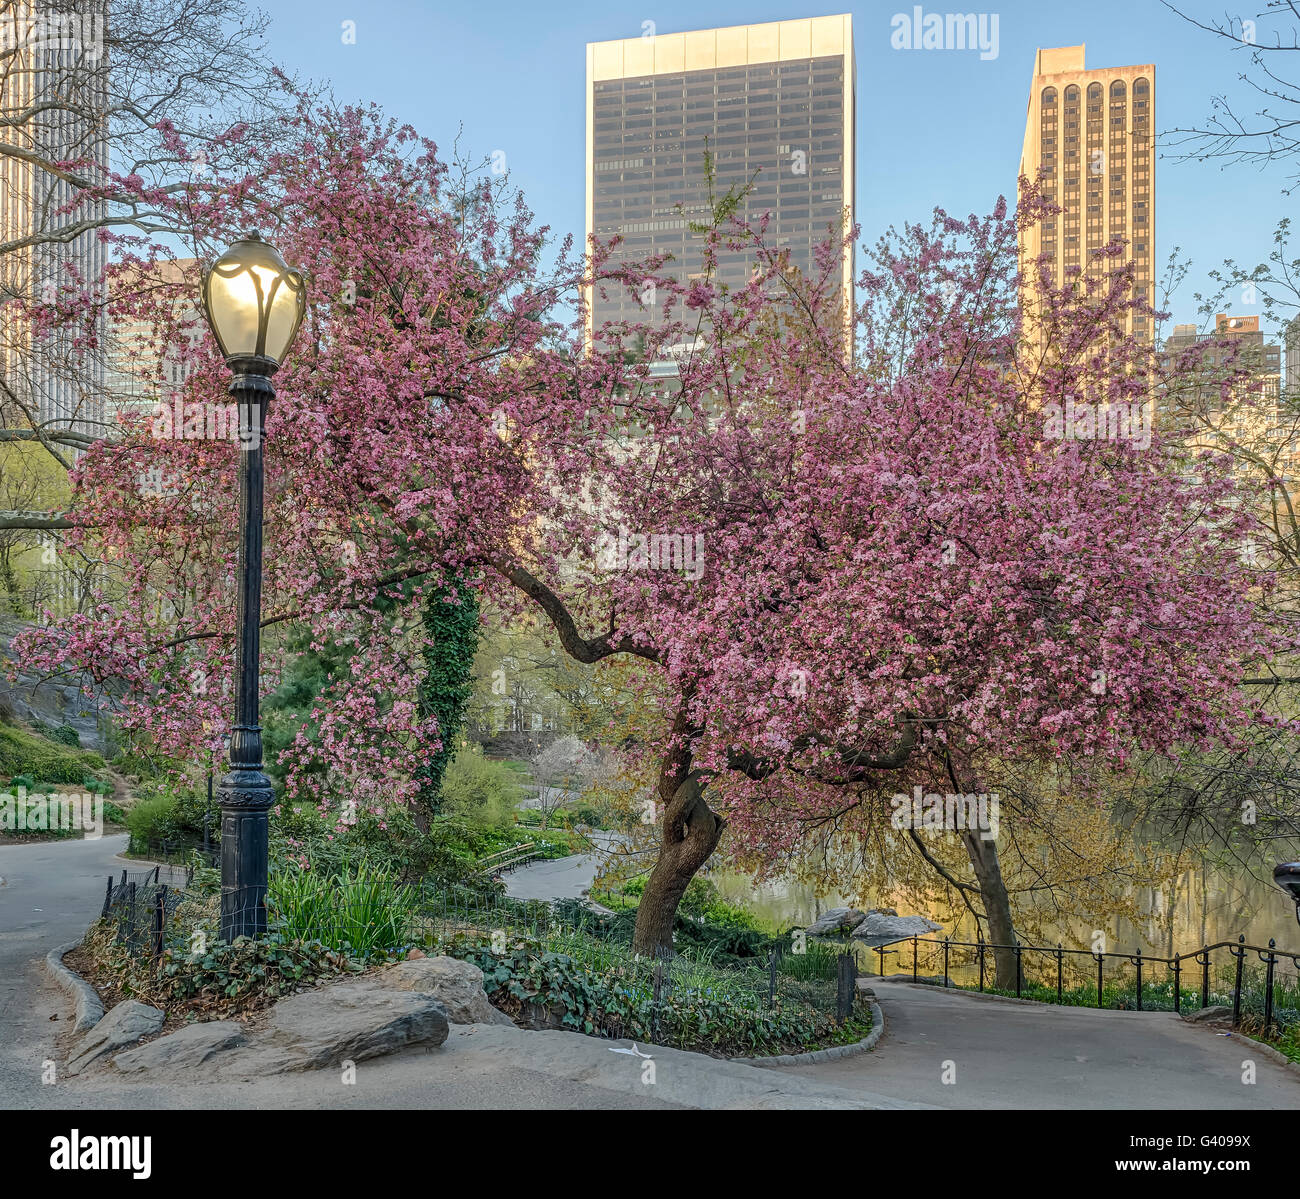 Central Park New York City With Flowering Trees In Spring Stock